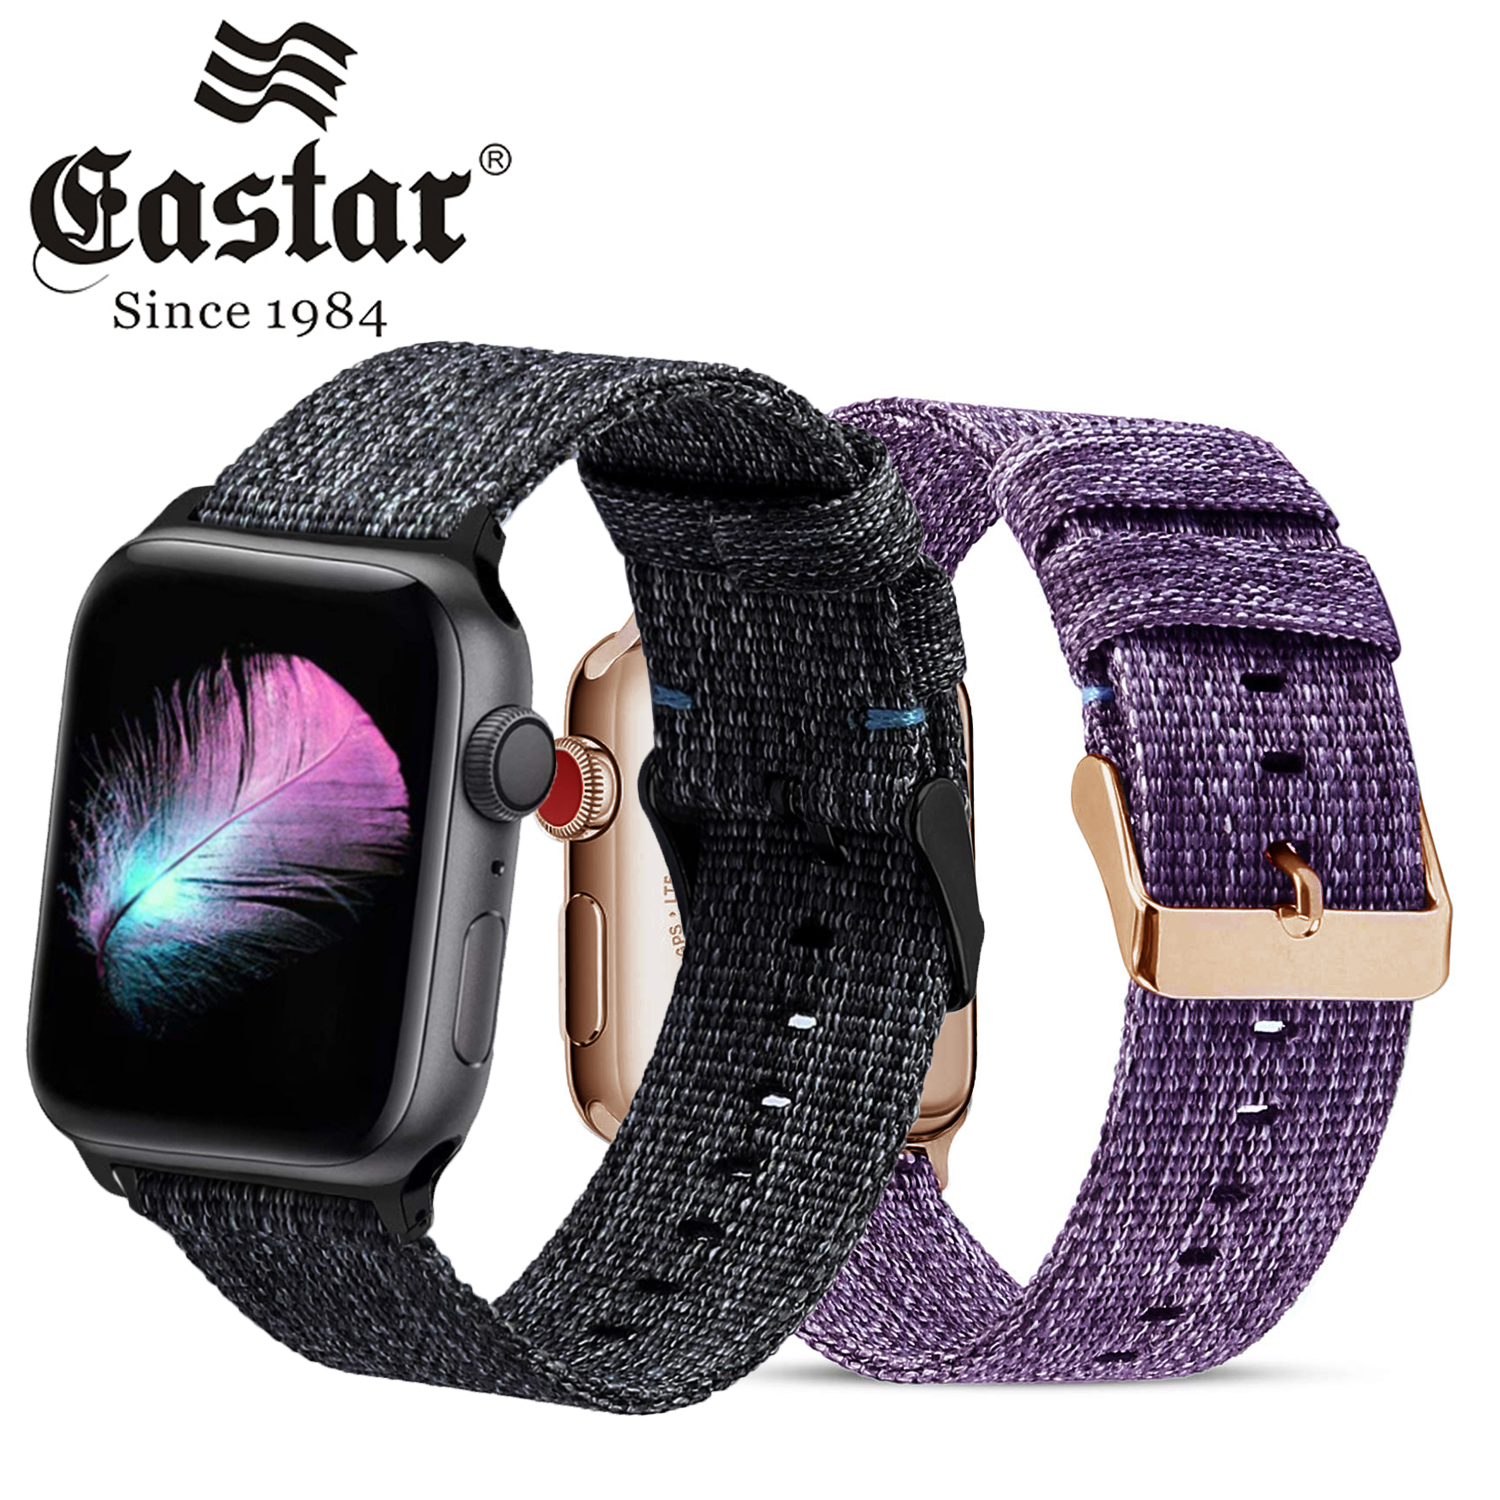 Woven Nylon Strap For Apple Watch Series 3/2/1 38MM 42MM Breathable Replacement Strap Sport Loop For Iwatch Series 5 4 40MM 44MM